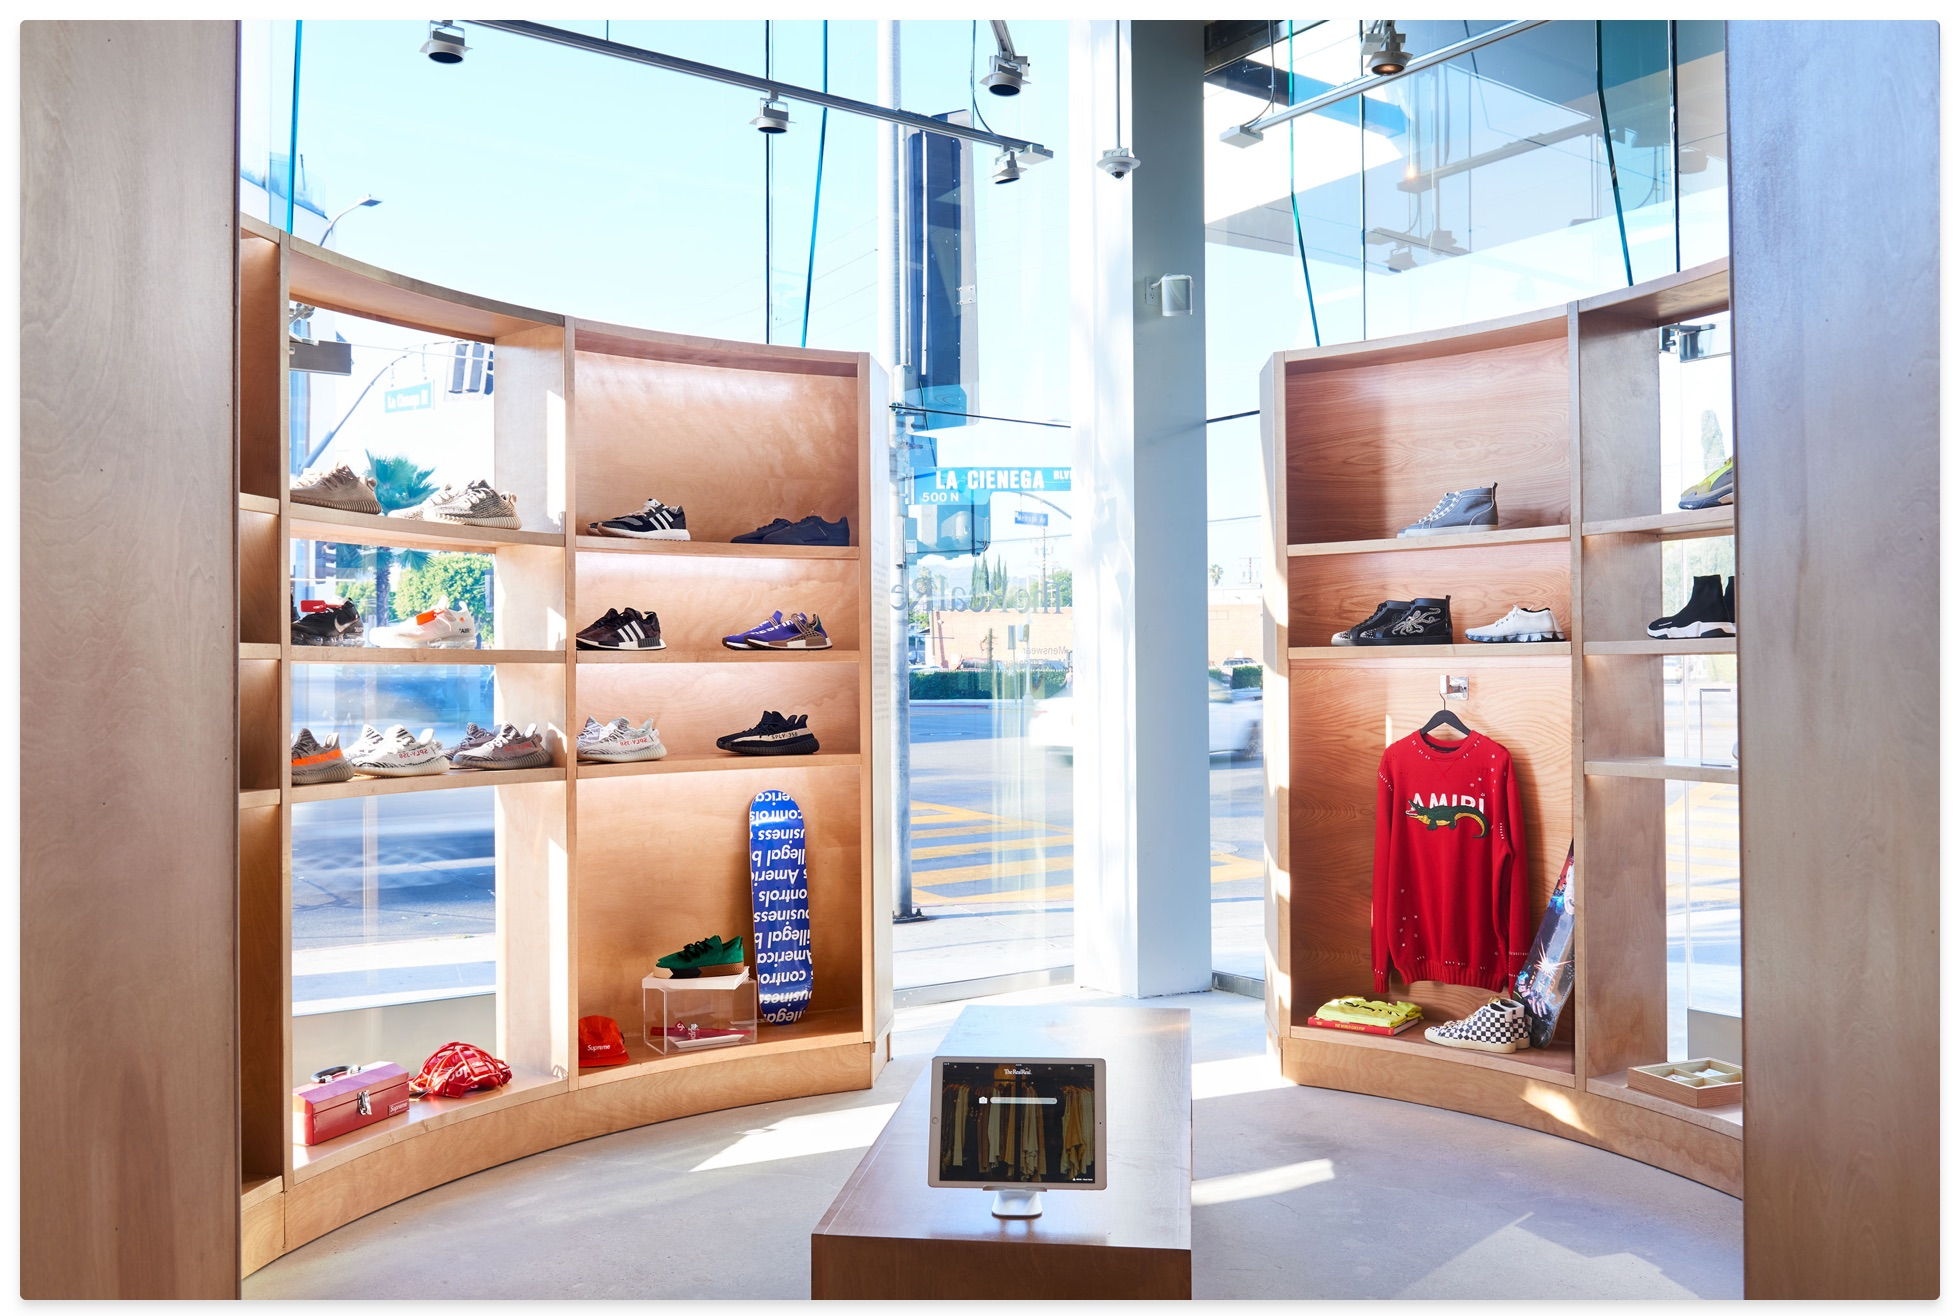 Inside the RealReal store